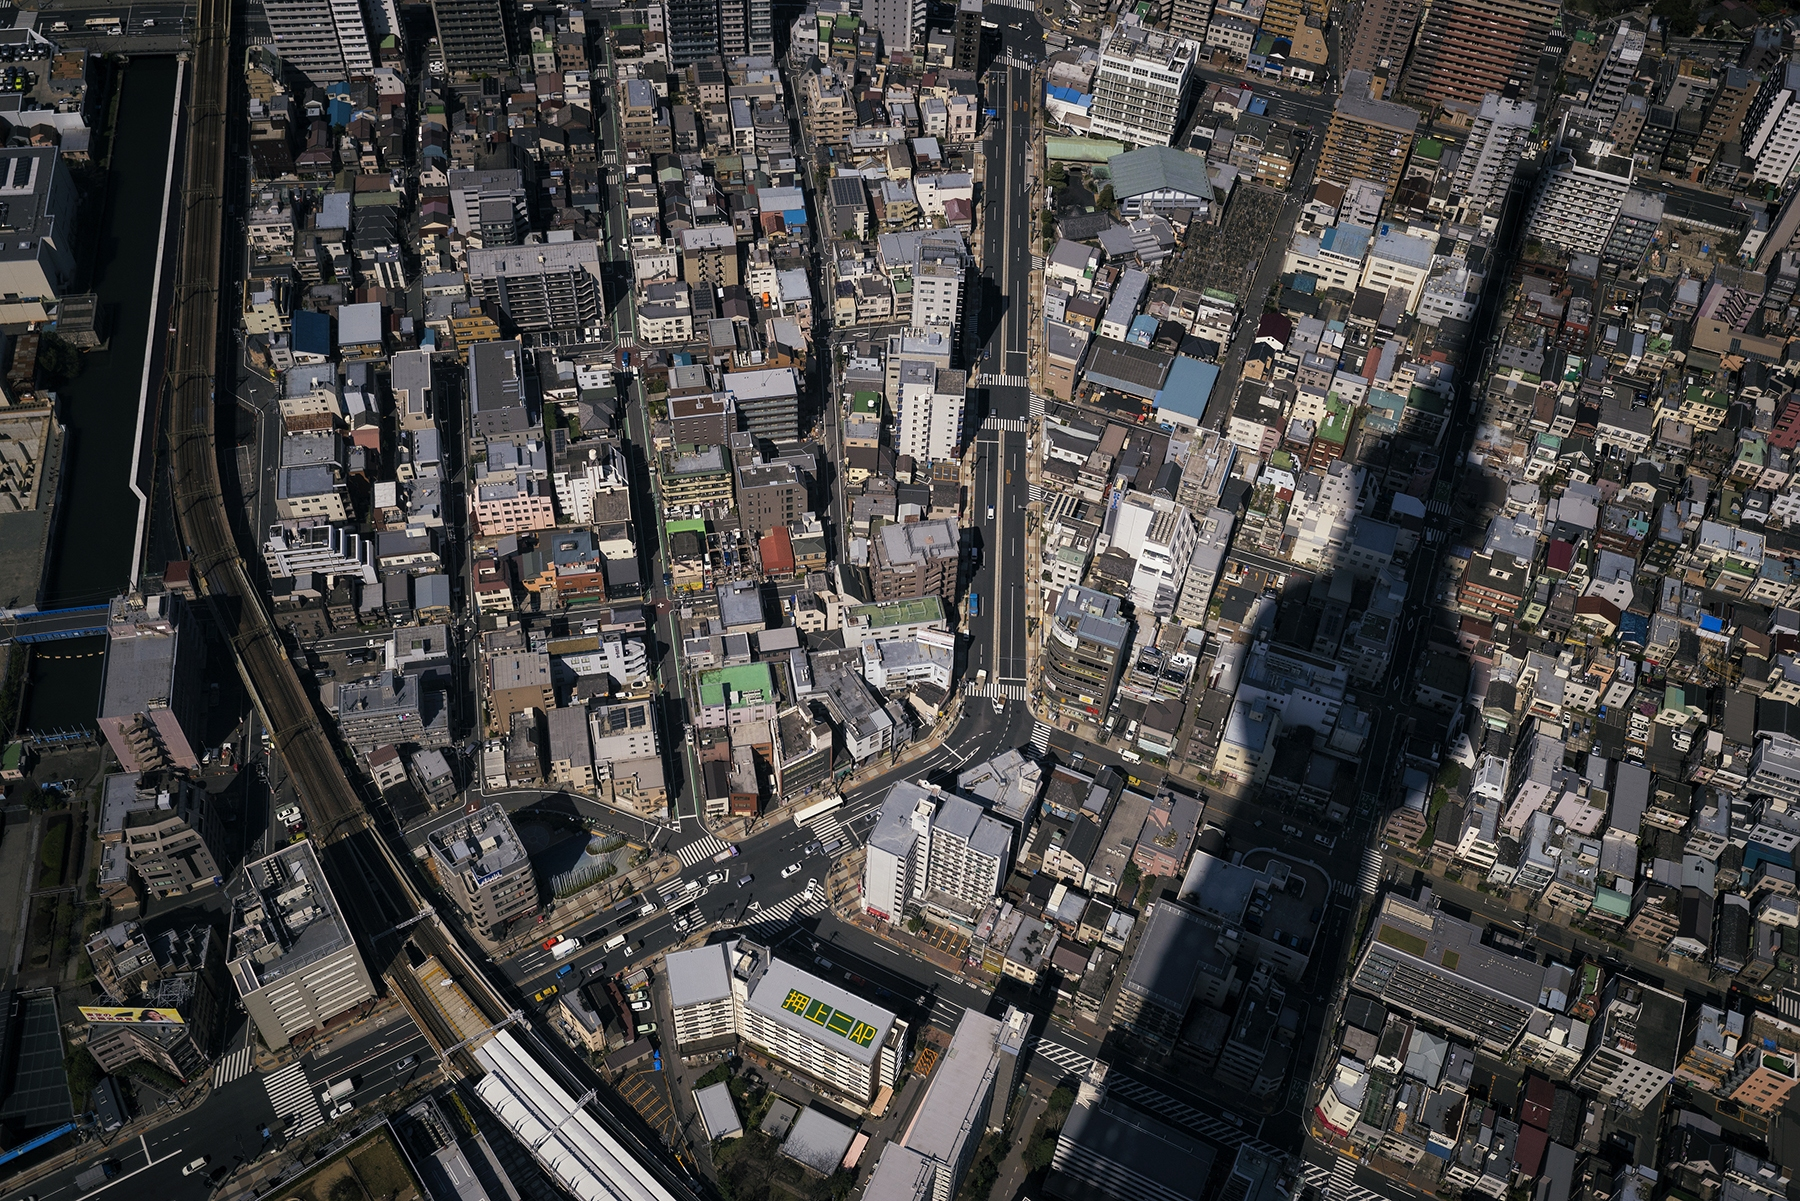 tokyo skytree, observation deck, broadcasting, restaurant, sumida, tallest tower, kanto, japan, asia, travel, to do, visit, television, shadow, tower, buildings, birds-eye view, city, up top, tall